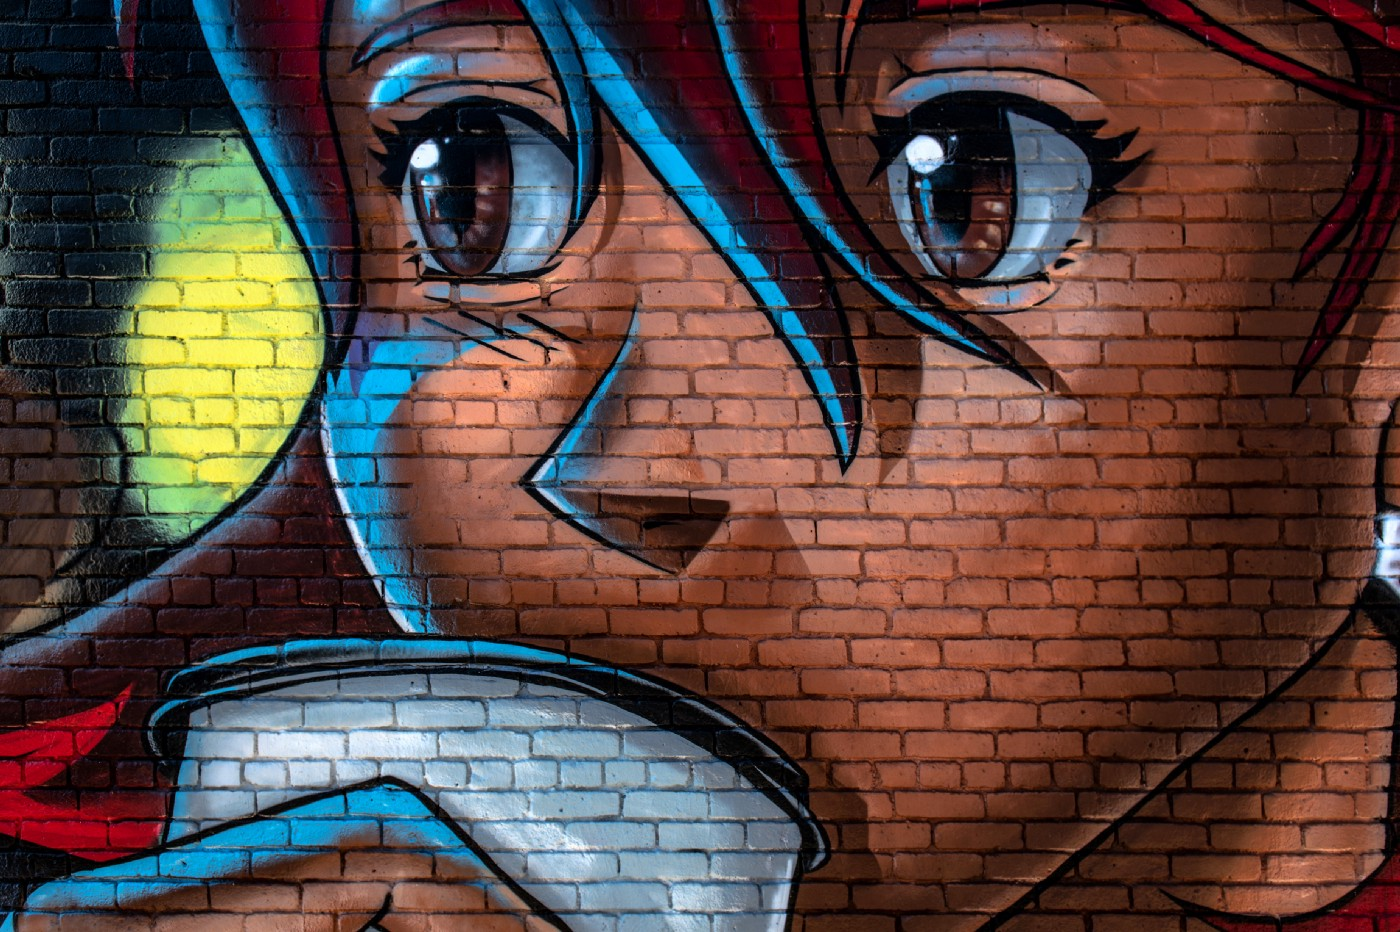 Drawing on a brick wall of an anime girl sipping coffee